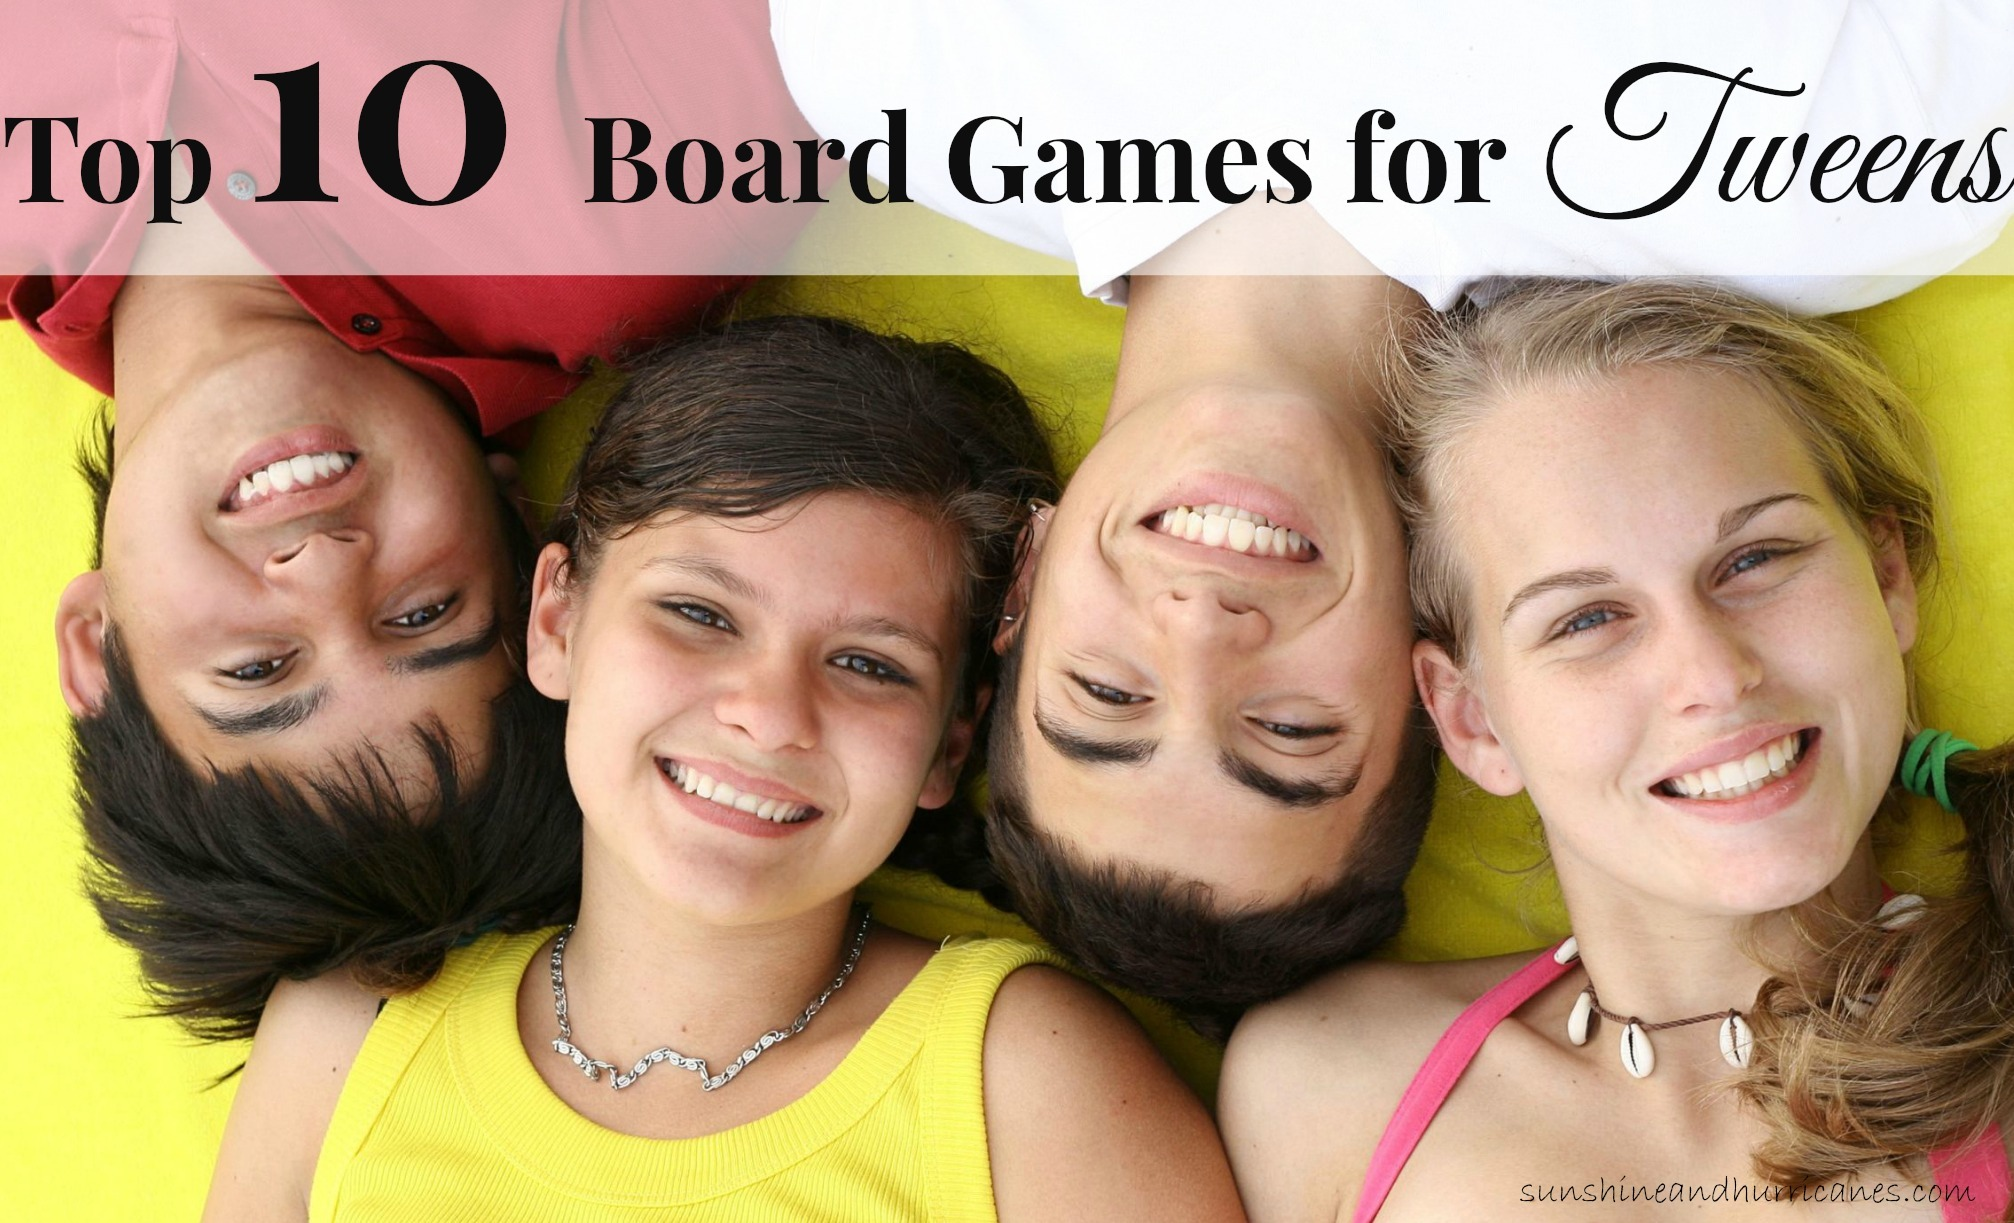 looking for a fun way to engage with your tween board games have long been